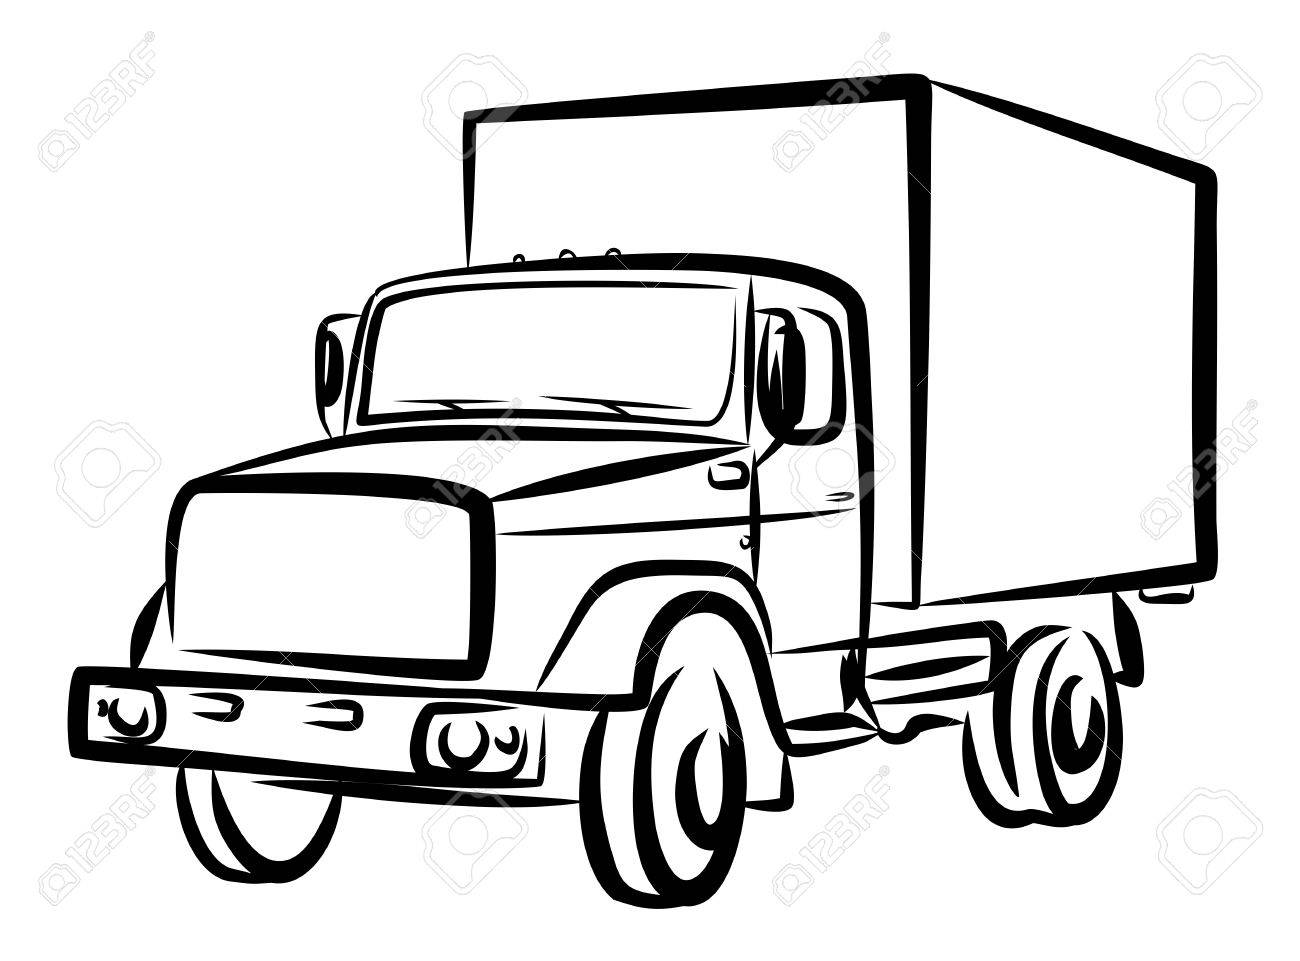 1300x961 Sketch Of Heavy Truck. Royalty Free Cliparts, Vectors, And Stock